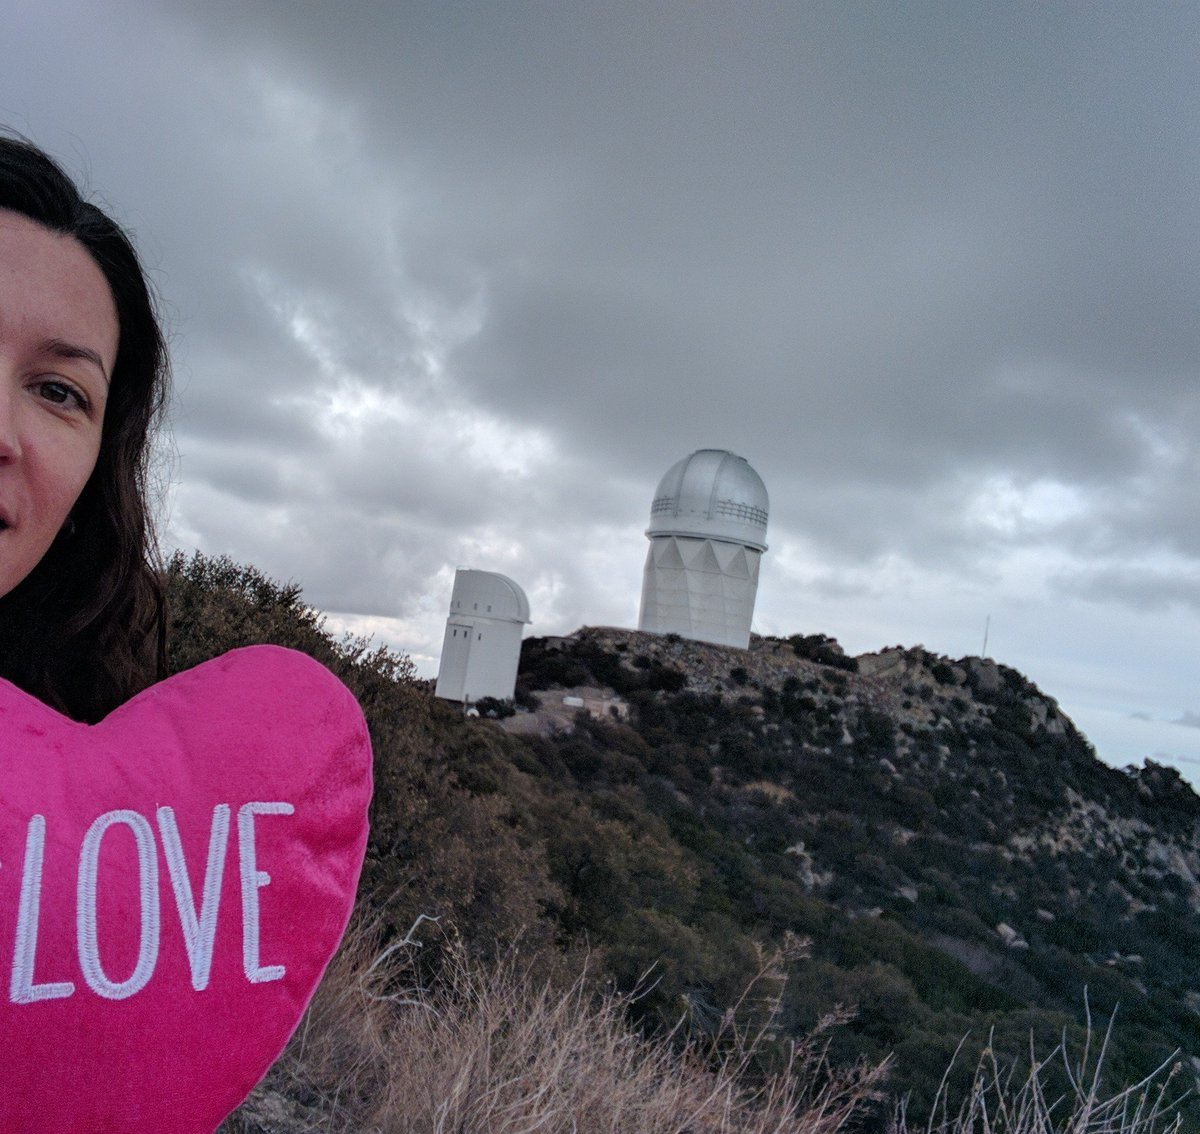 In honor of both #TBT and #ValentinesDay2019... in 2017, I spent #ValentinesDay observing at @NOAONorths 4-meter Mayall telescope as we were preparing for the @desisurvey! (Disclaimer: not so many photons were captured that particular night, but I had many other great nights)